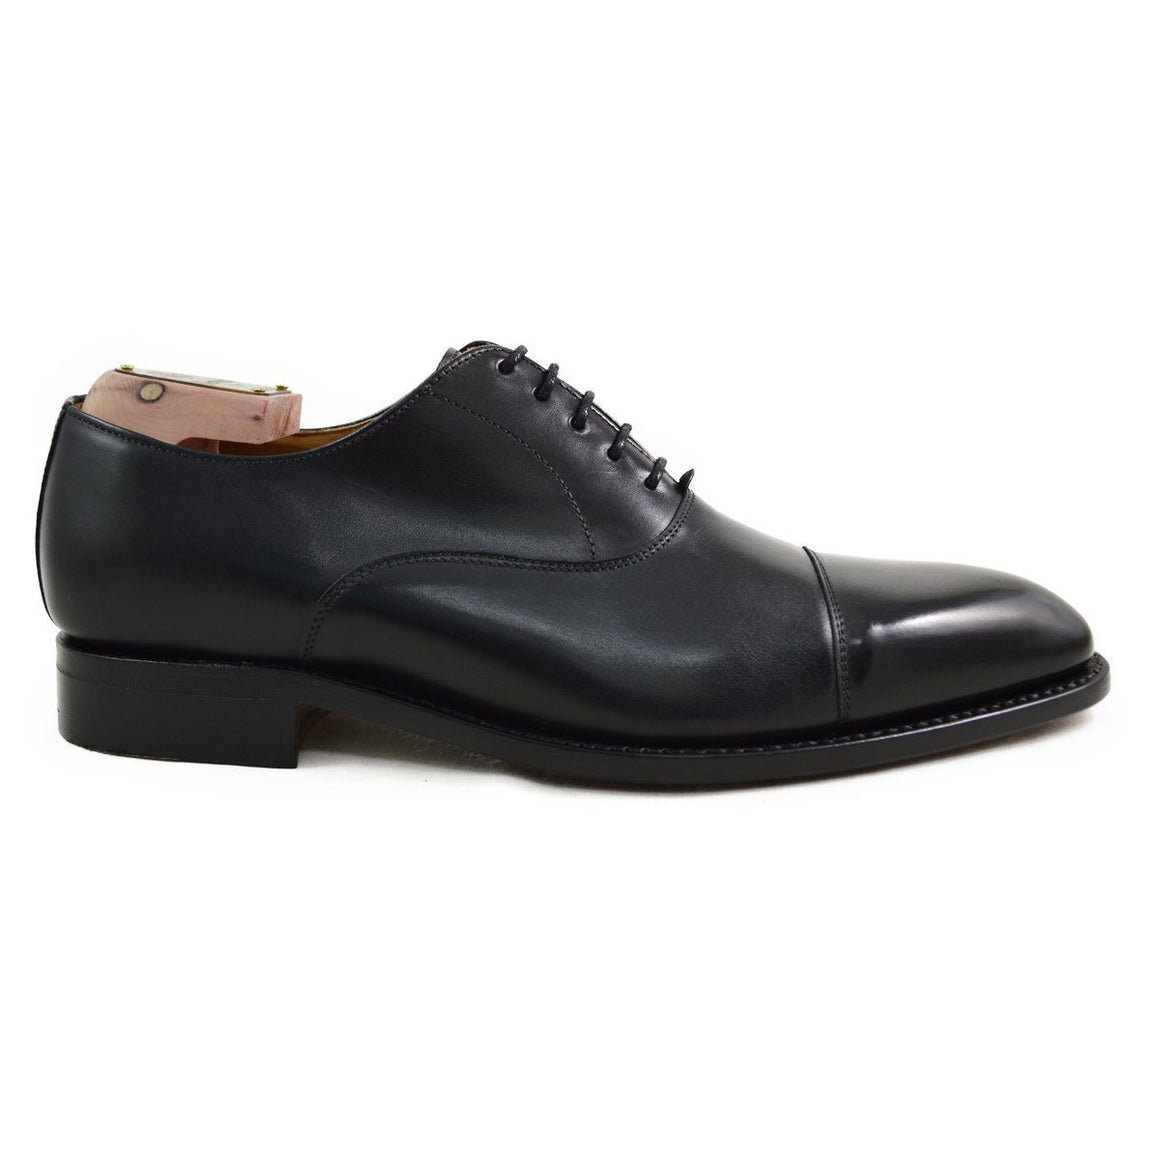 Berwick 1707 Straight Cap Oxford